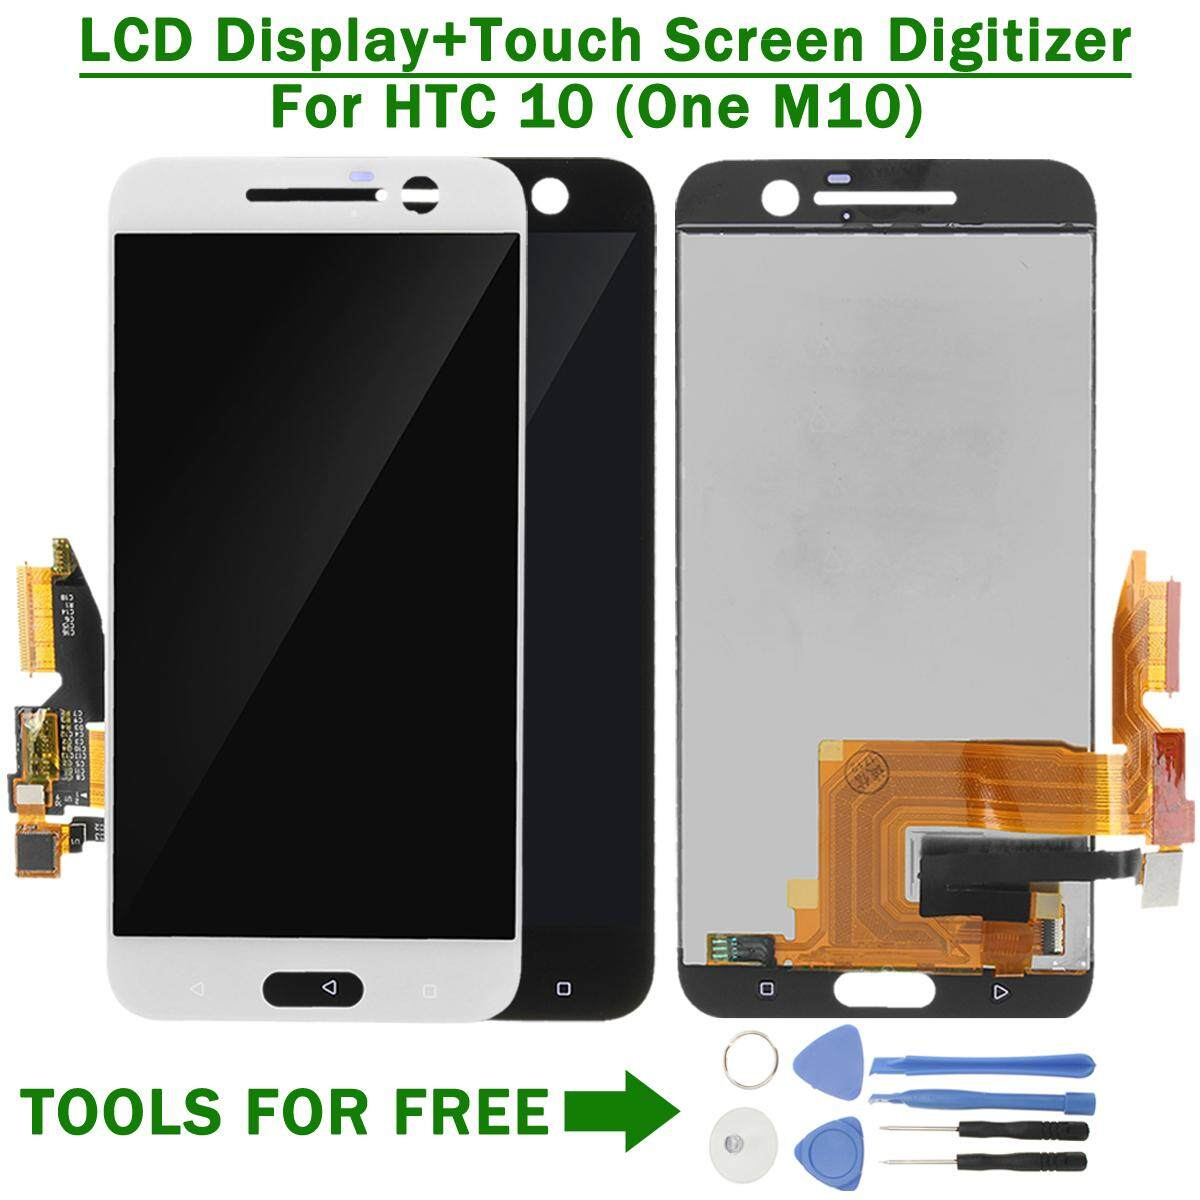 Original LCD Display Screen Digitizer Replacement For HTC 10 (One M10) White - intl